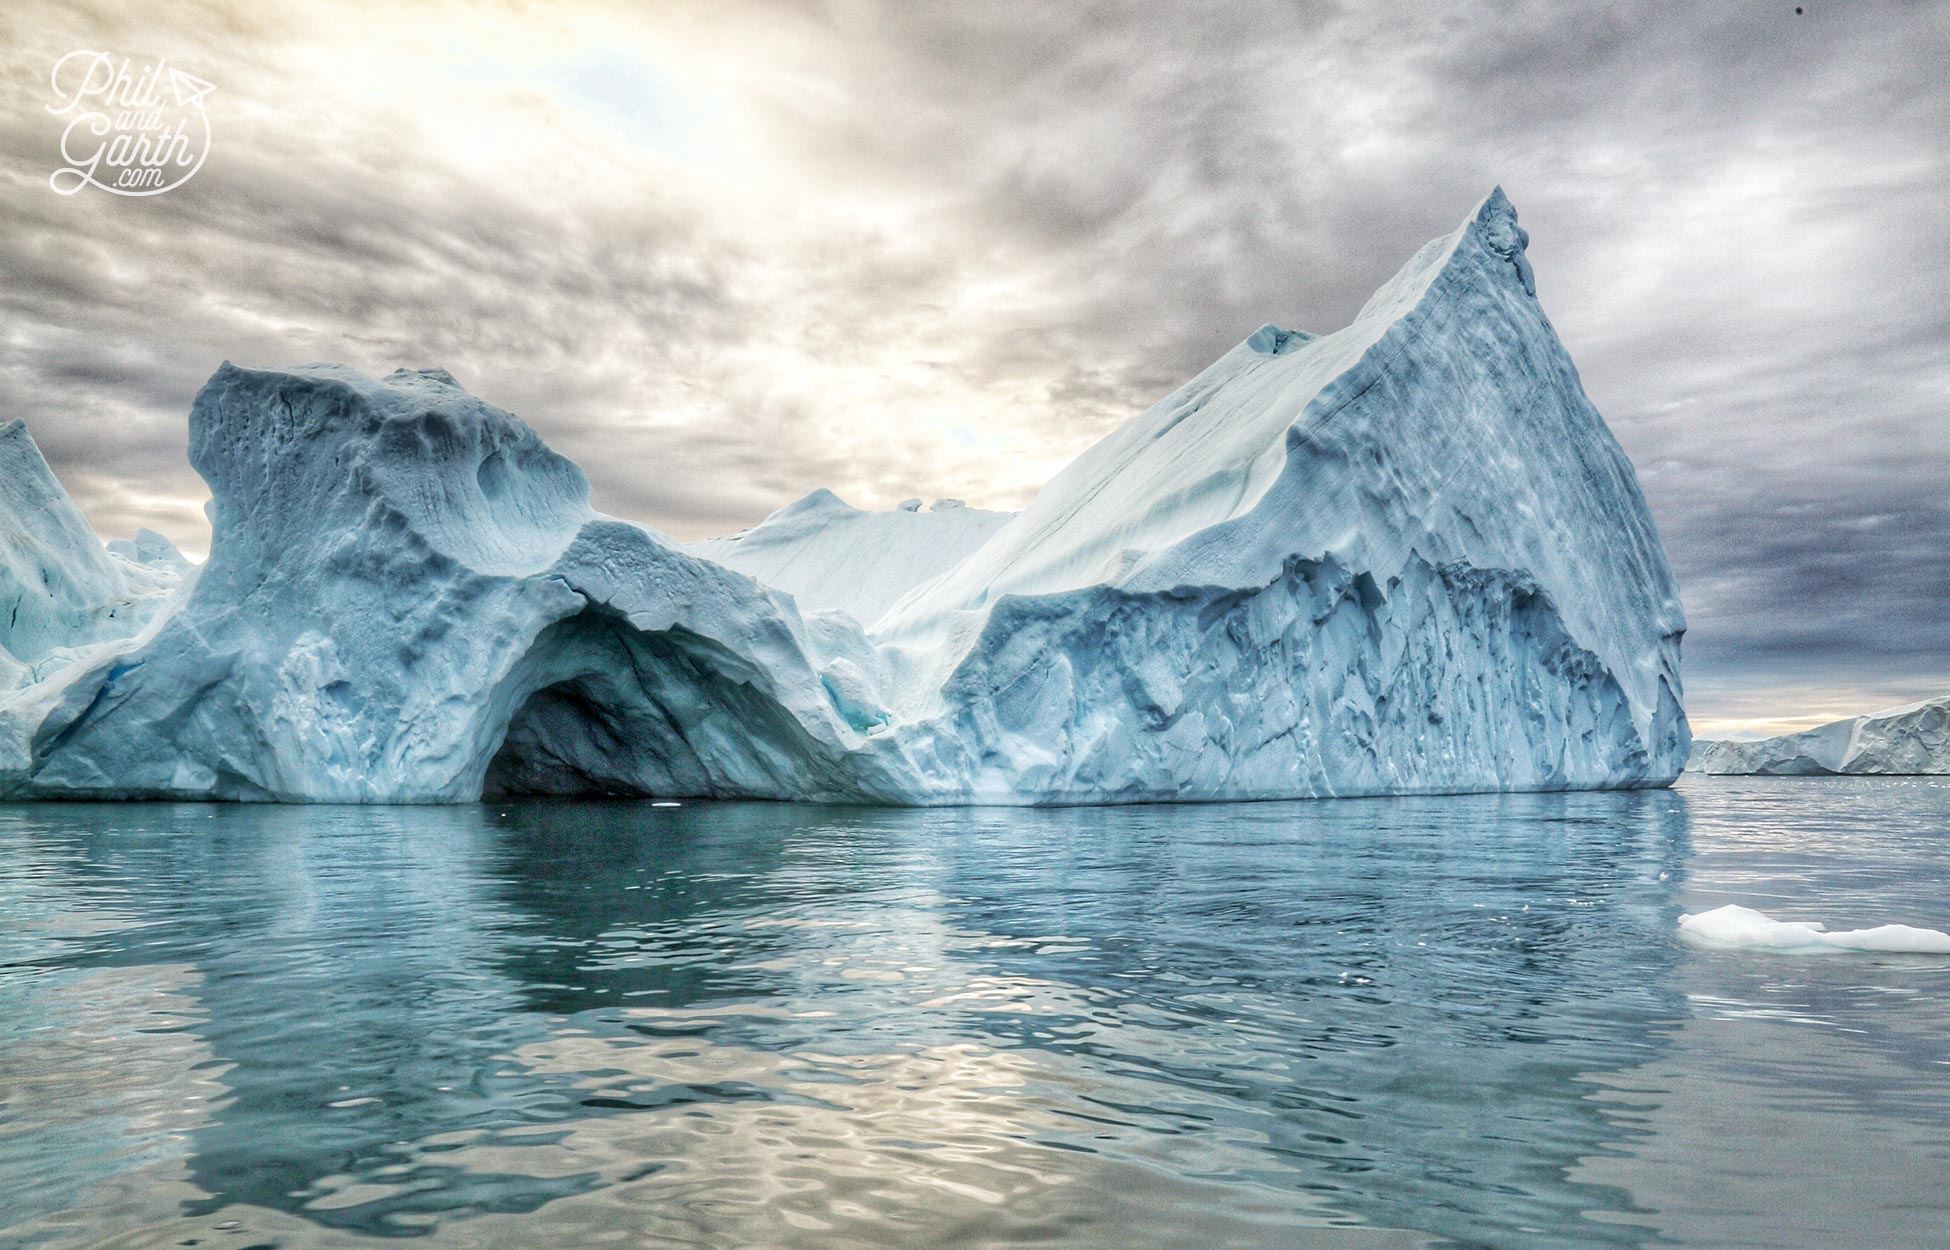 Water movements and the heat from the sun create caves in icebergs